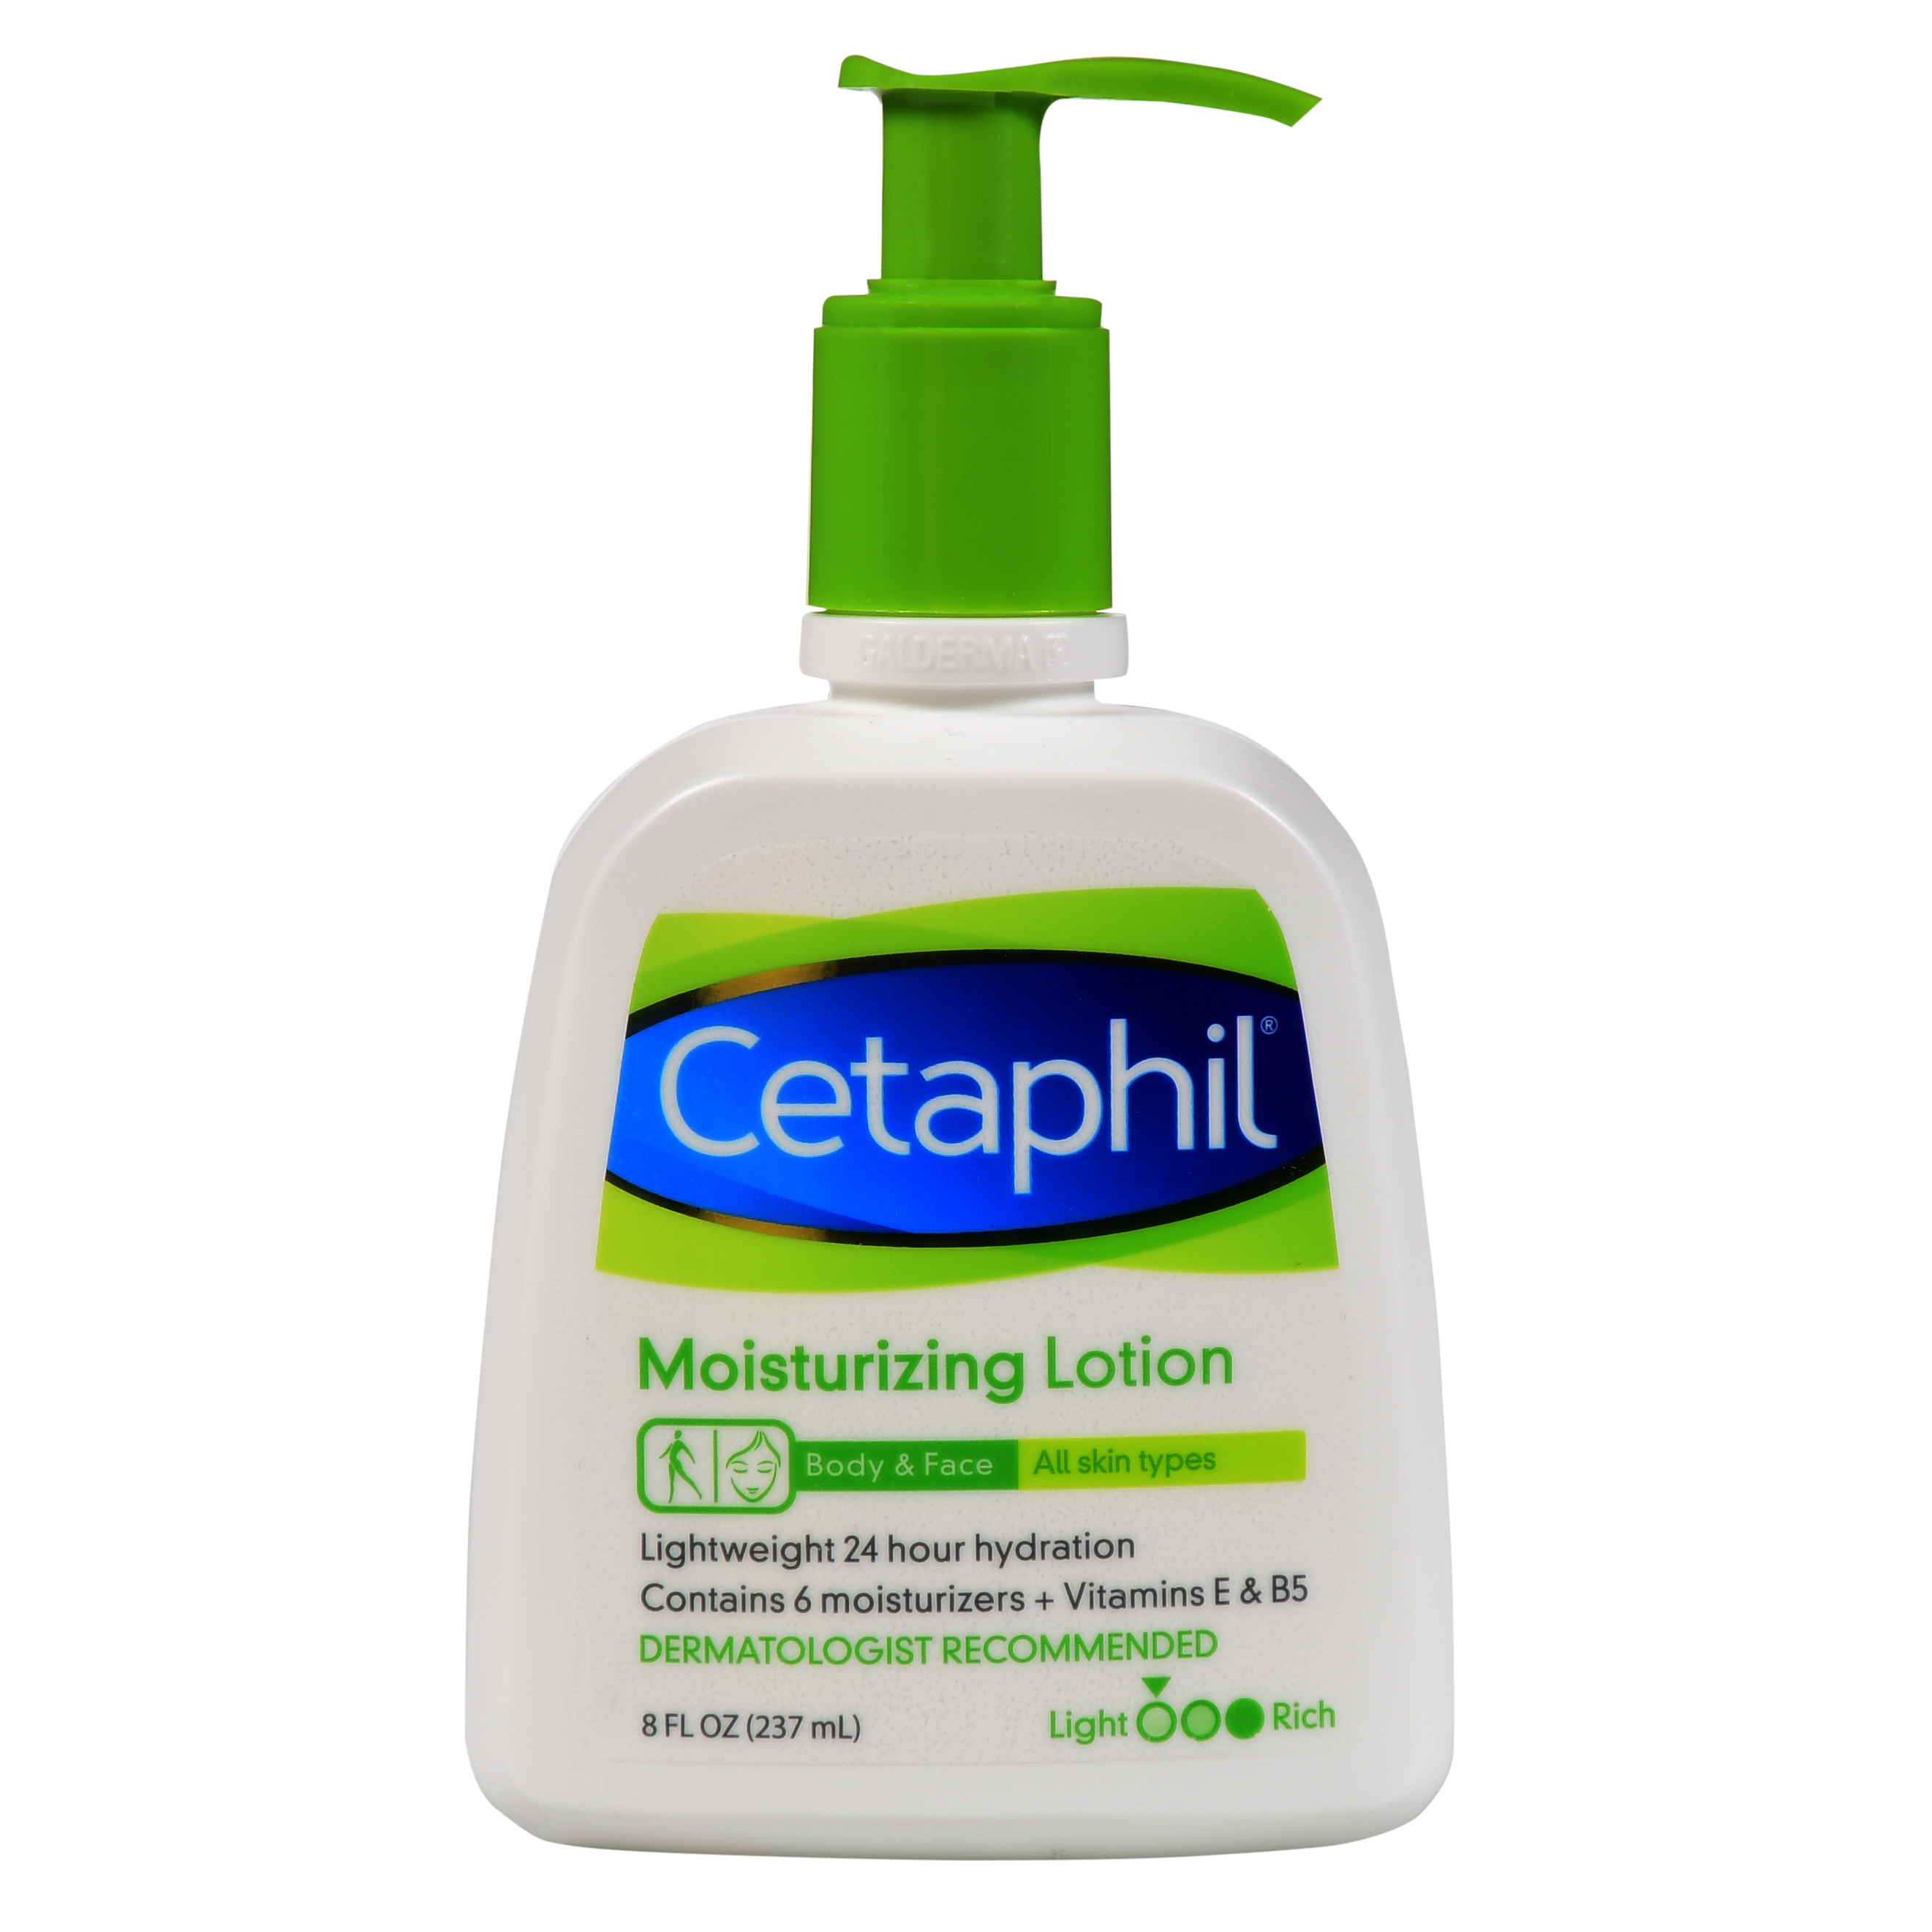 Cetaphil Moisturizing Lotion - Body & Face - For All Skin Types - Net Wt. 8 FL OZ (237 mL) Per Bottle - One (1) Bottle